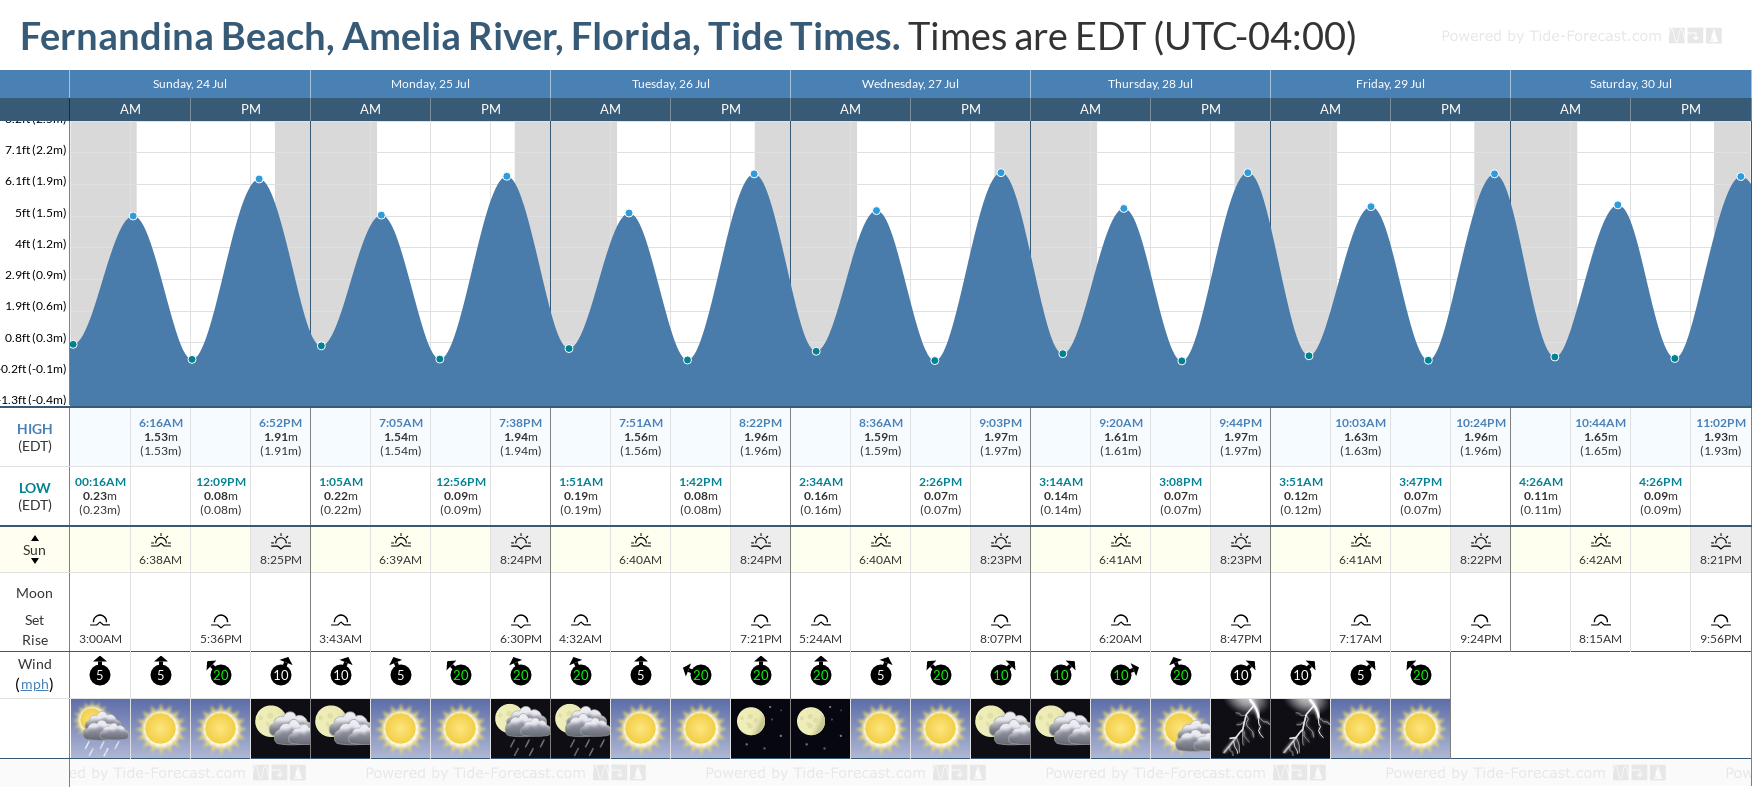 Fernandina Beach, Amelia River, Florida Tide Chart including high and low tide tide times for the next 7 days